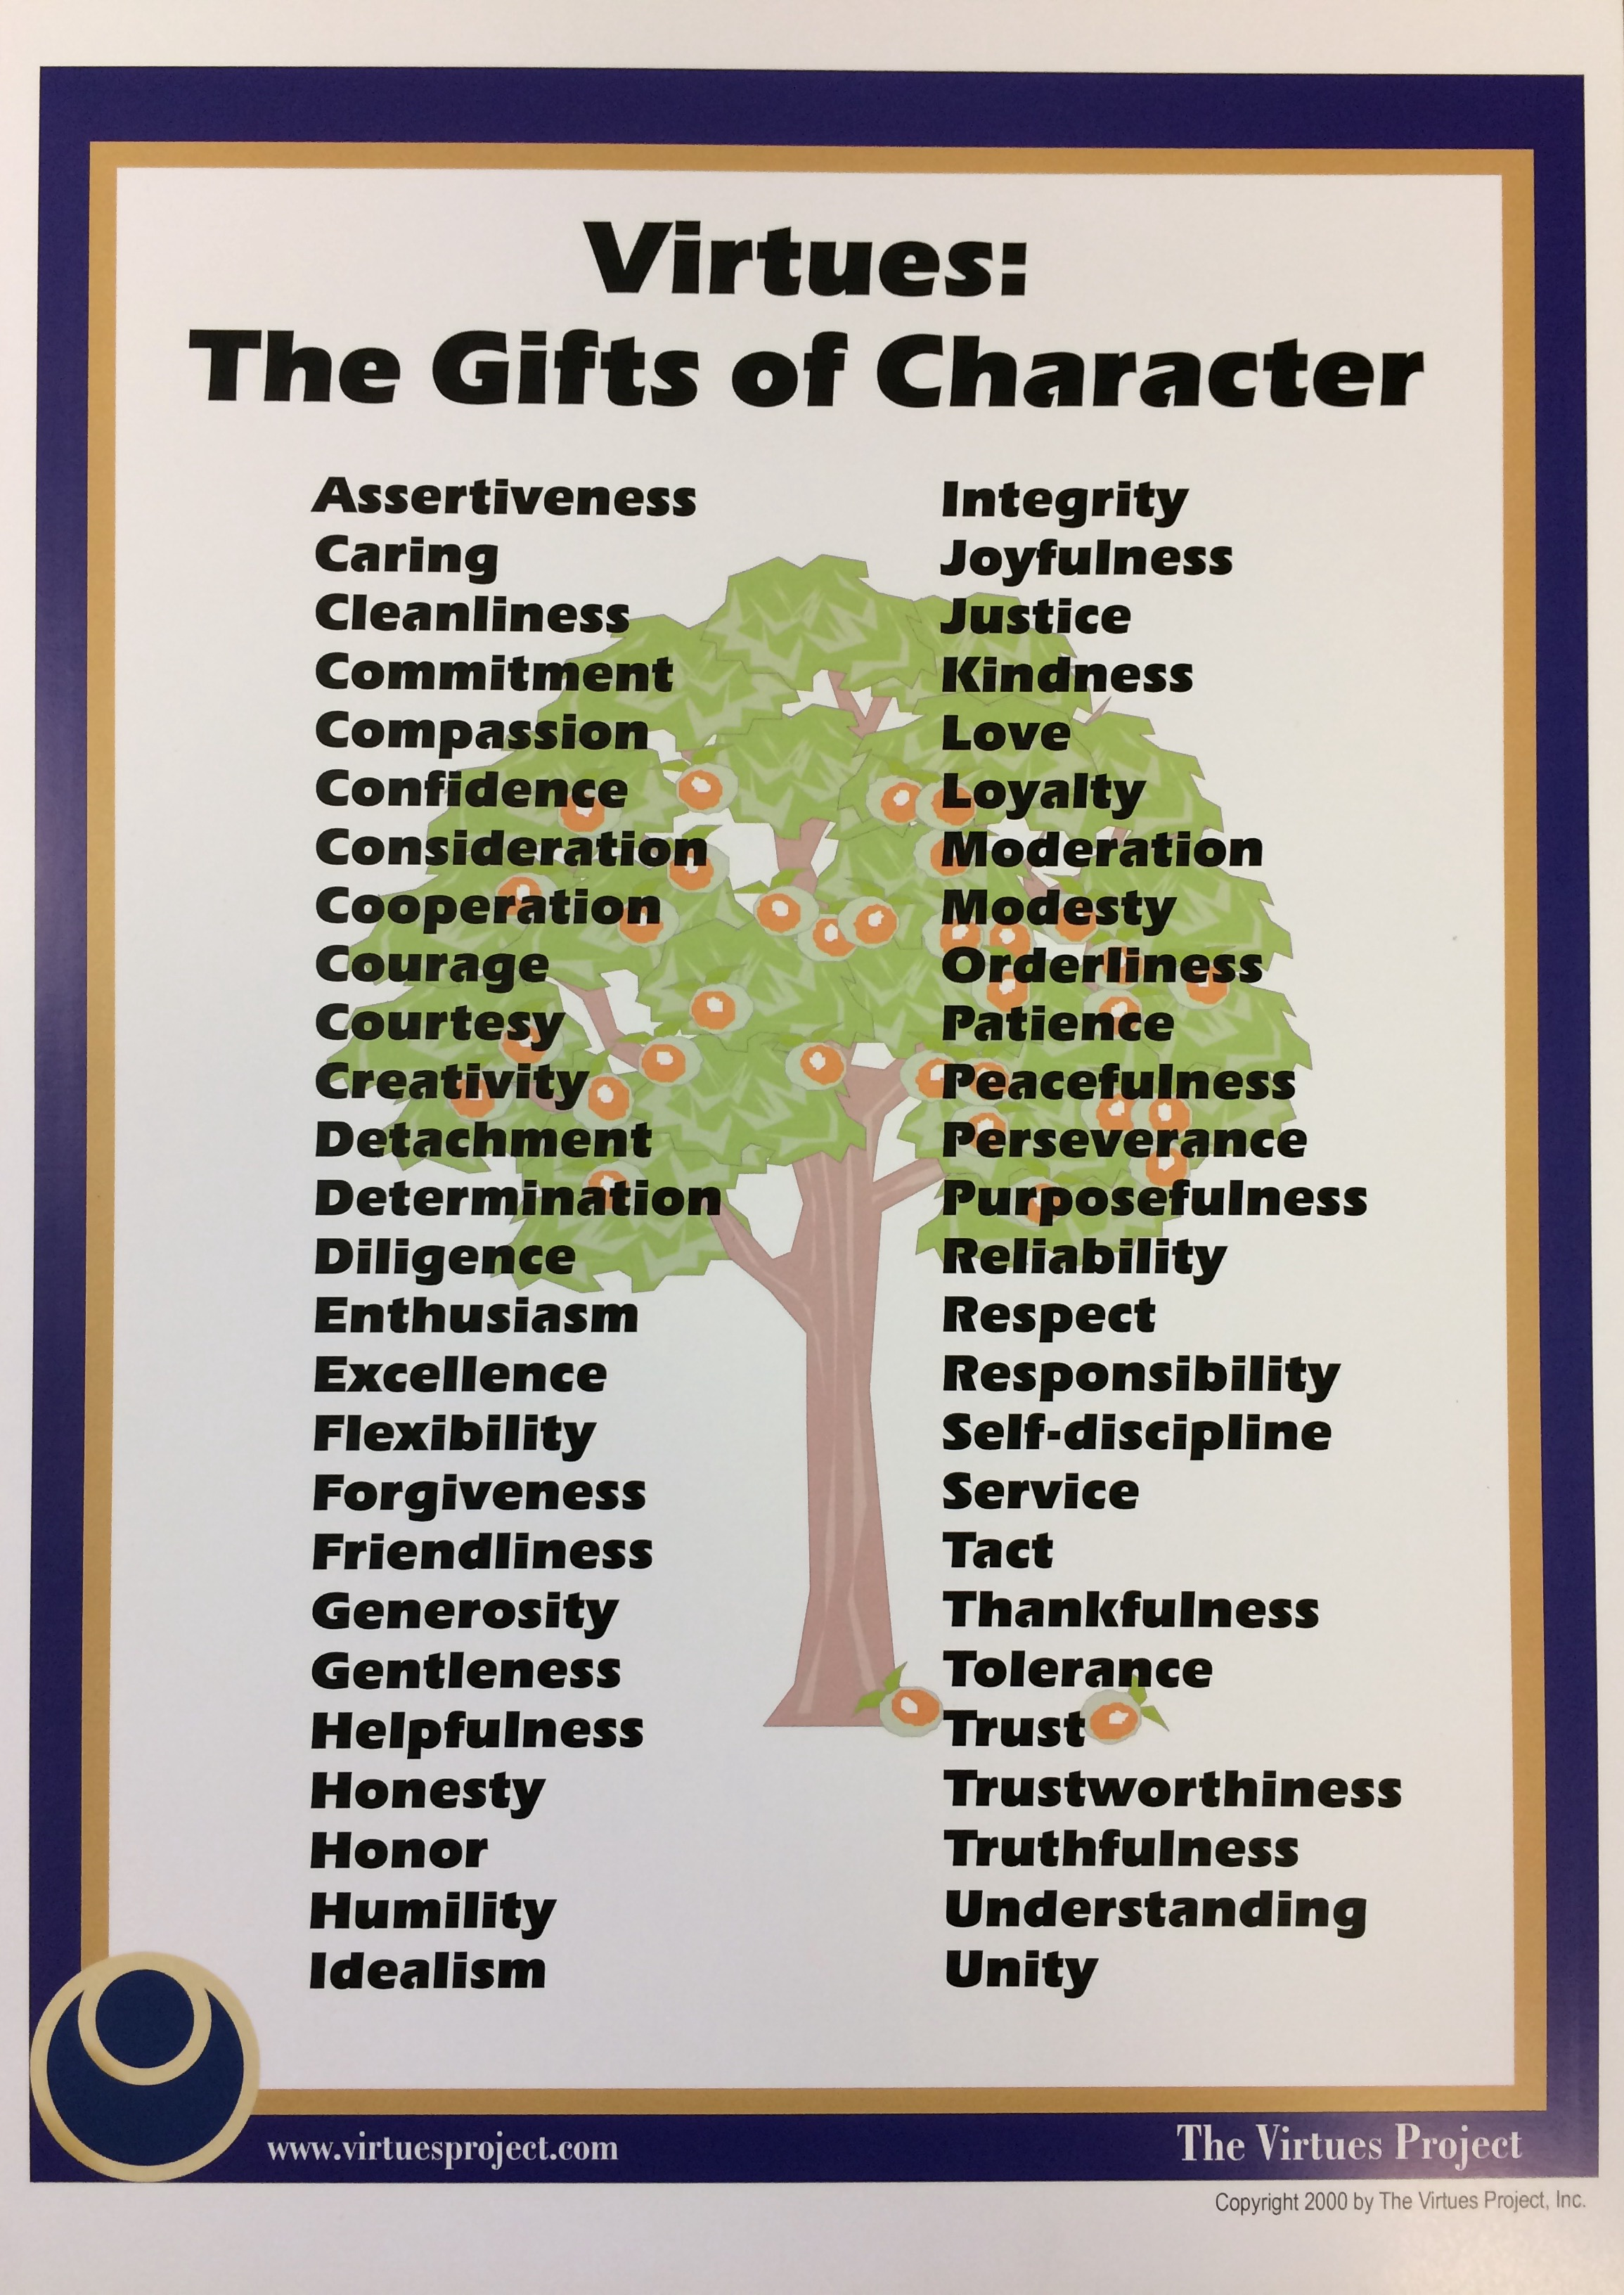 12 Virtues gifts of character poster - small version